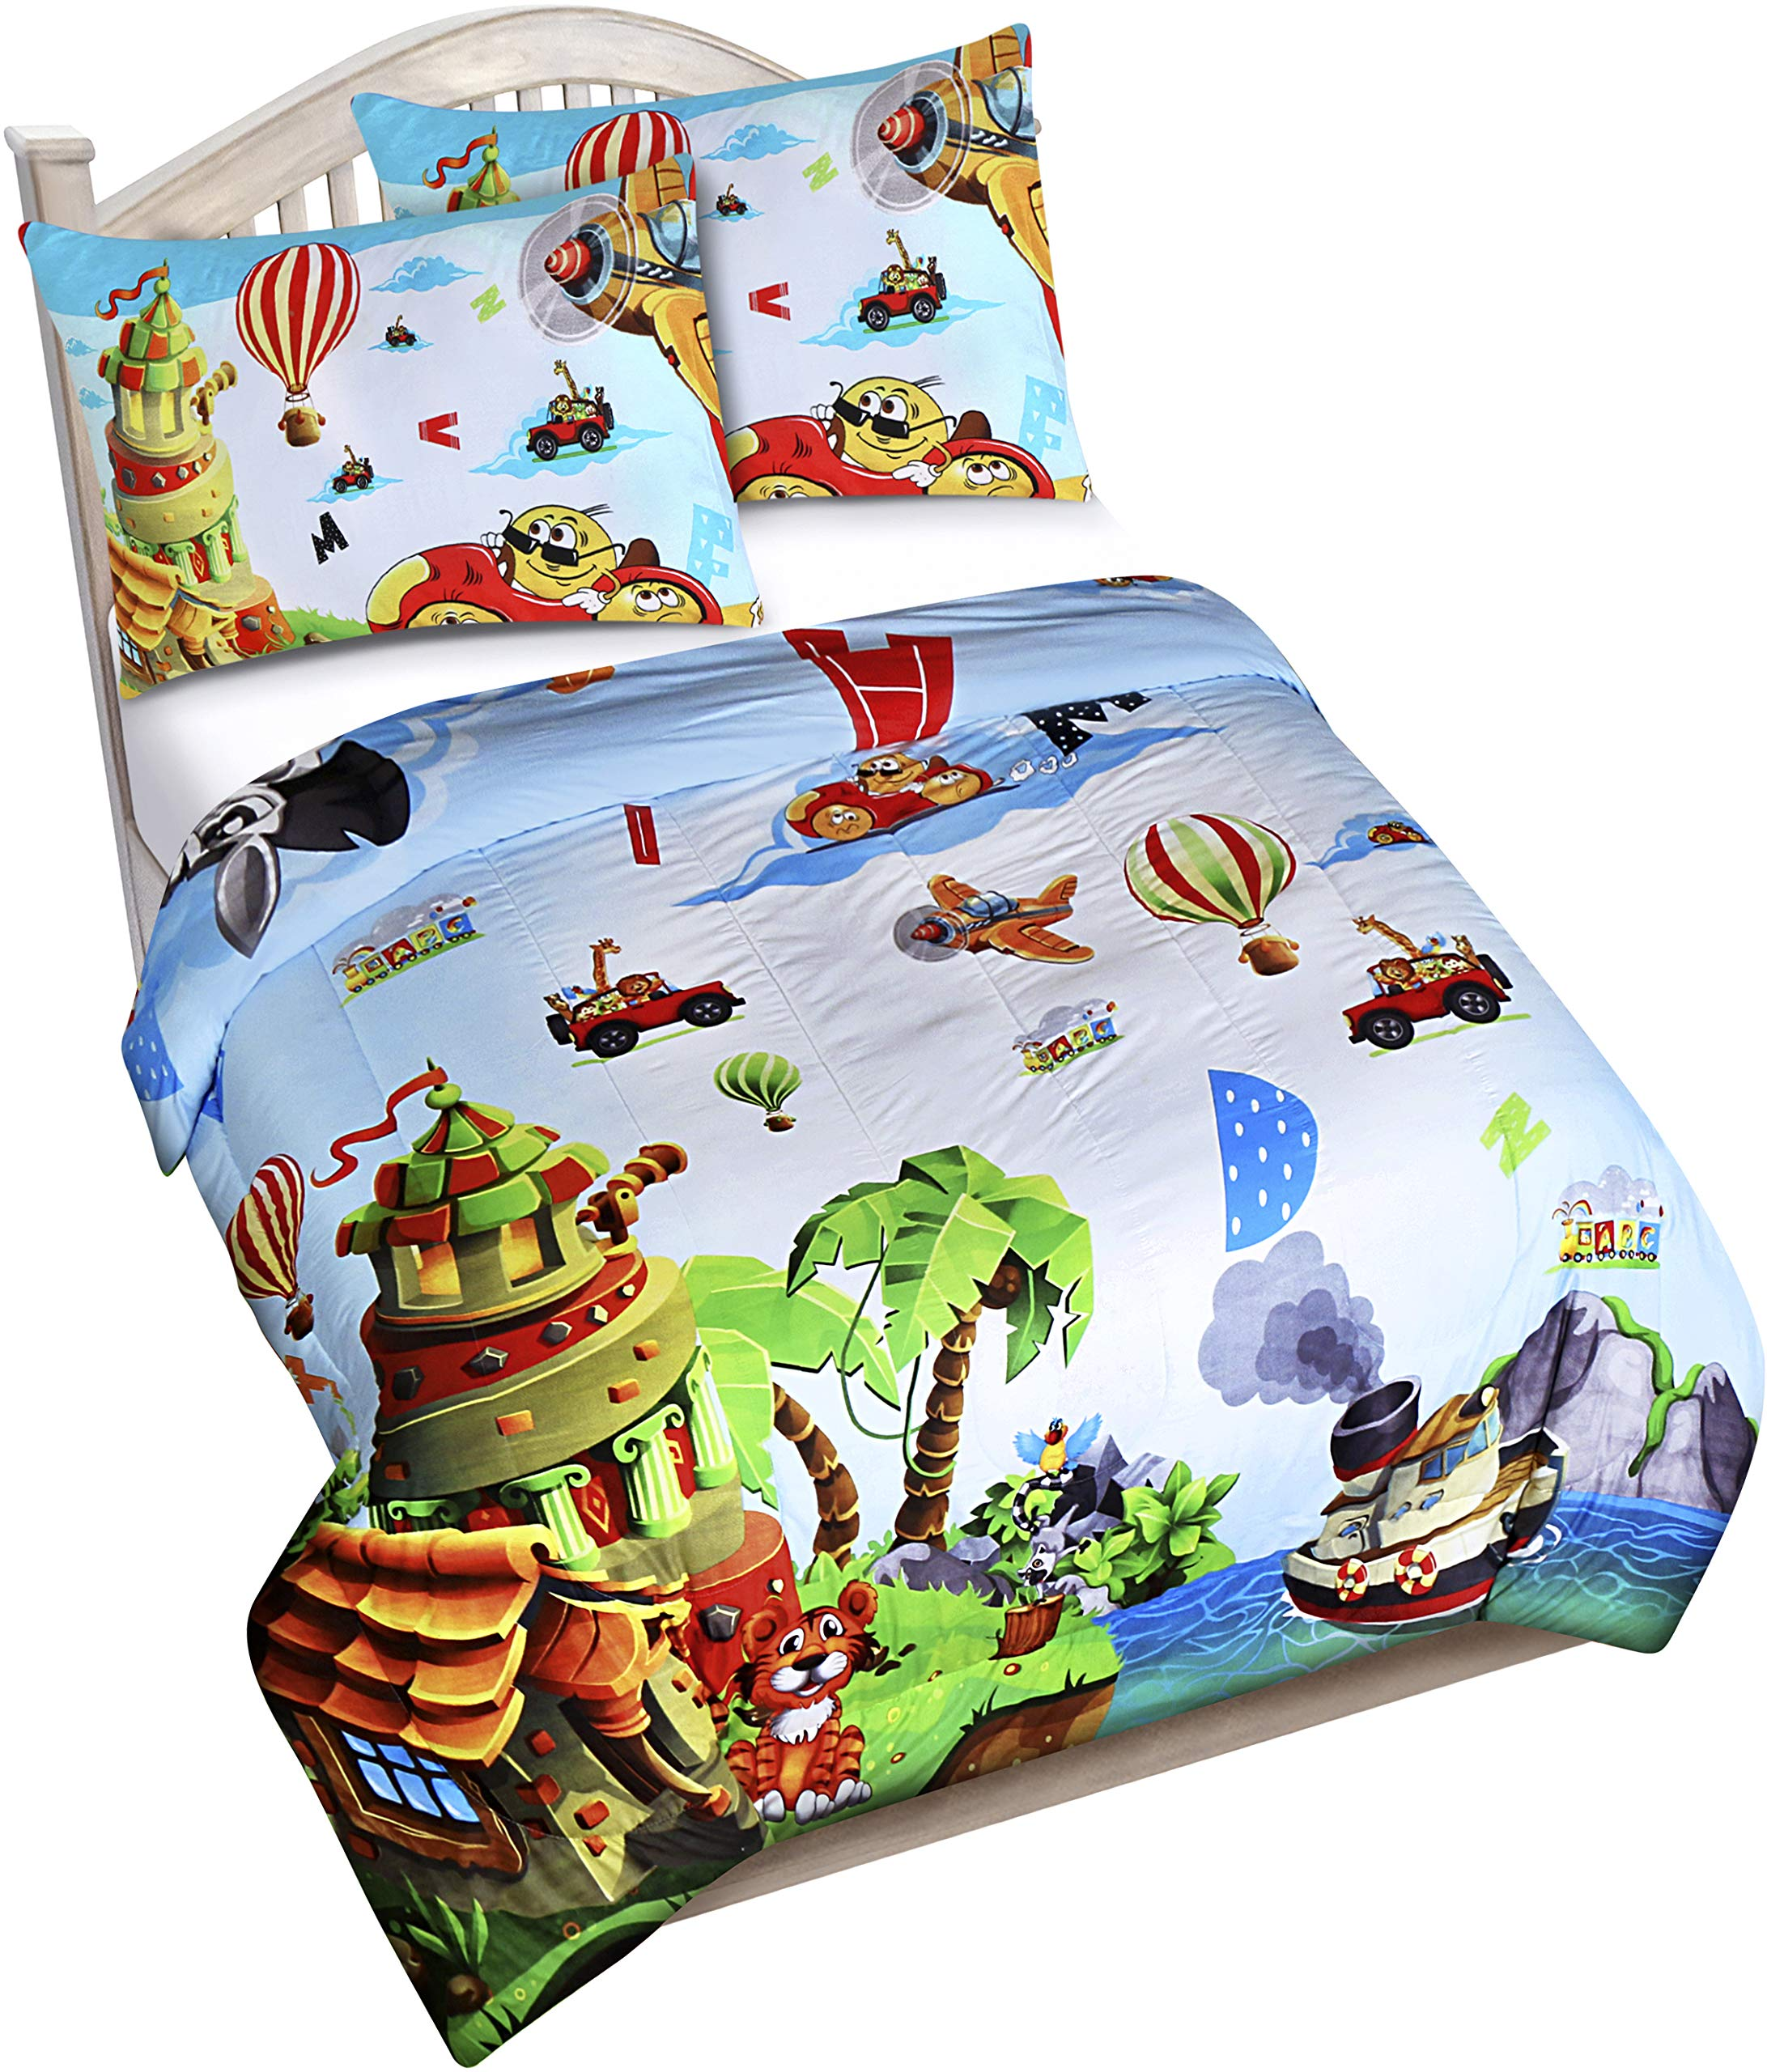 Utopia Bedding All Season Jungle Animal ABC Letter Comforter Set with 2 Pillow Cases - 3 Piece Soft Brushed Microfiber Kids Bedding Set for Boys/Girls – Machine Washable (Twin/Twin XL)